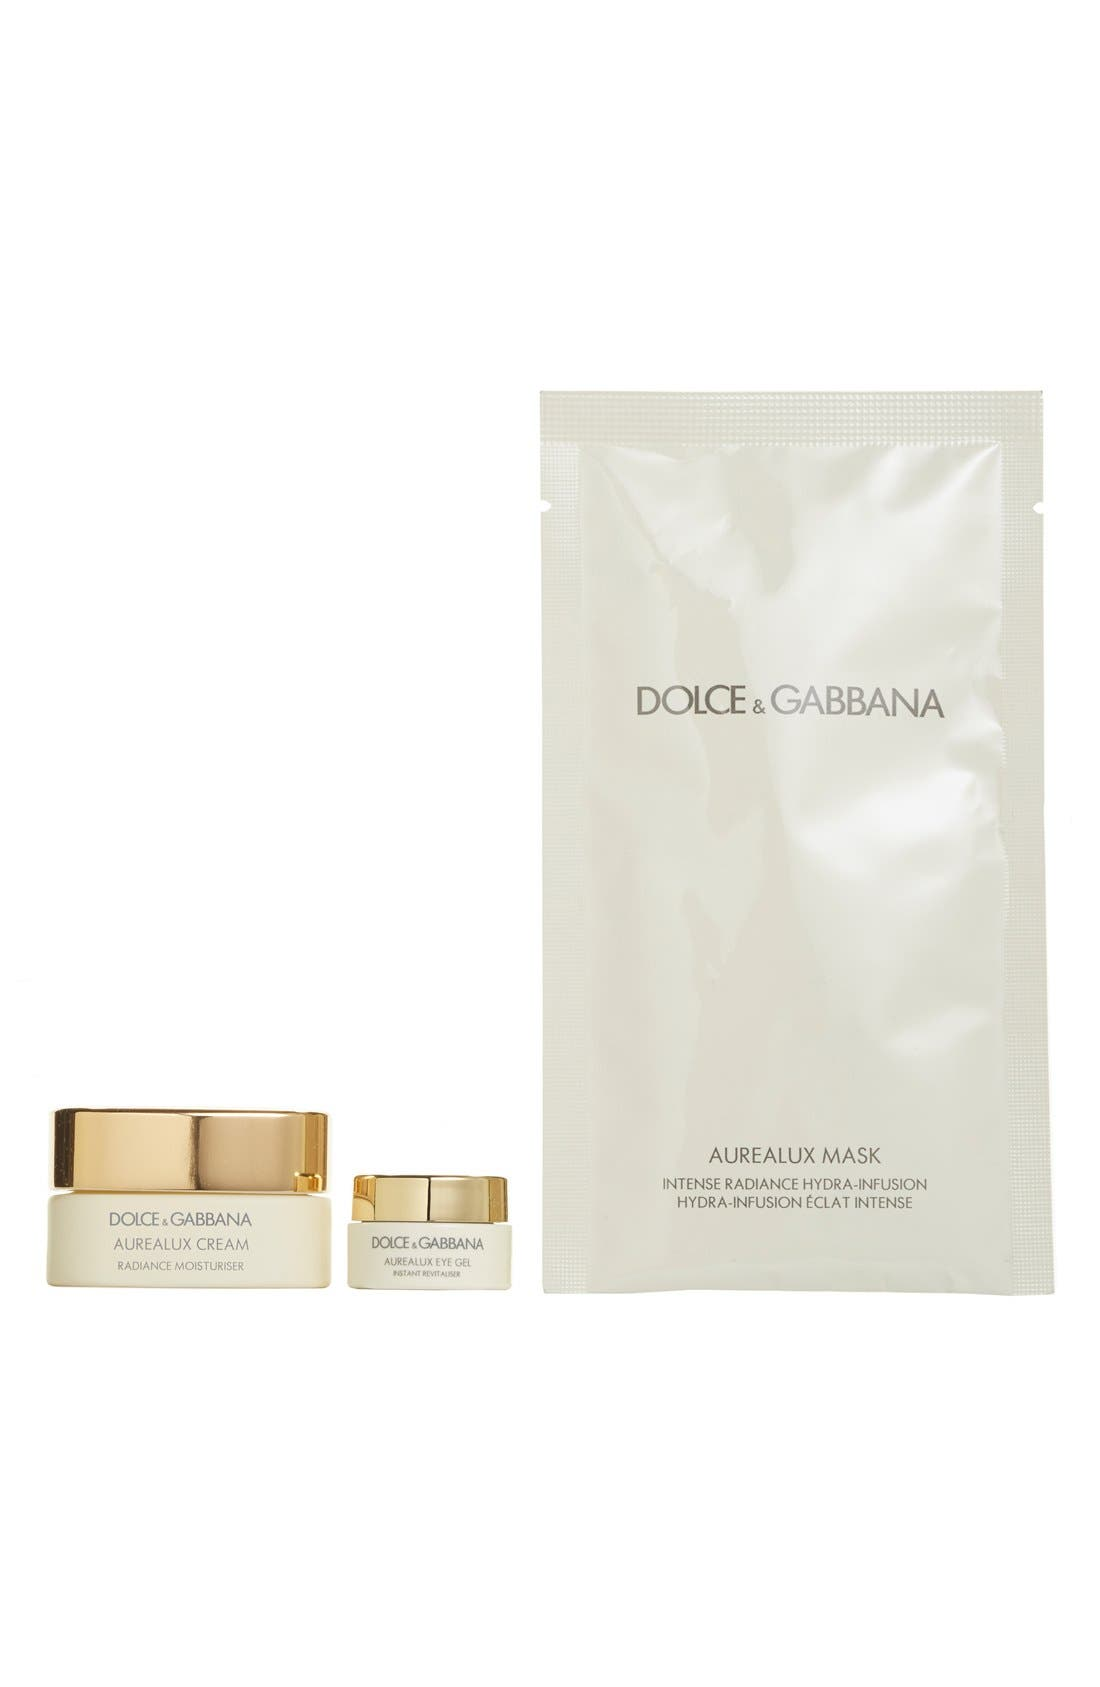 Dolce&Gabbana Beauty 'Skin Discovery' Set ($74 Value)